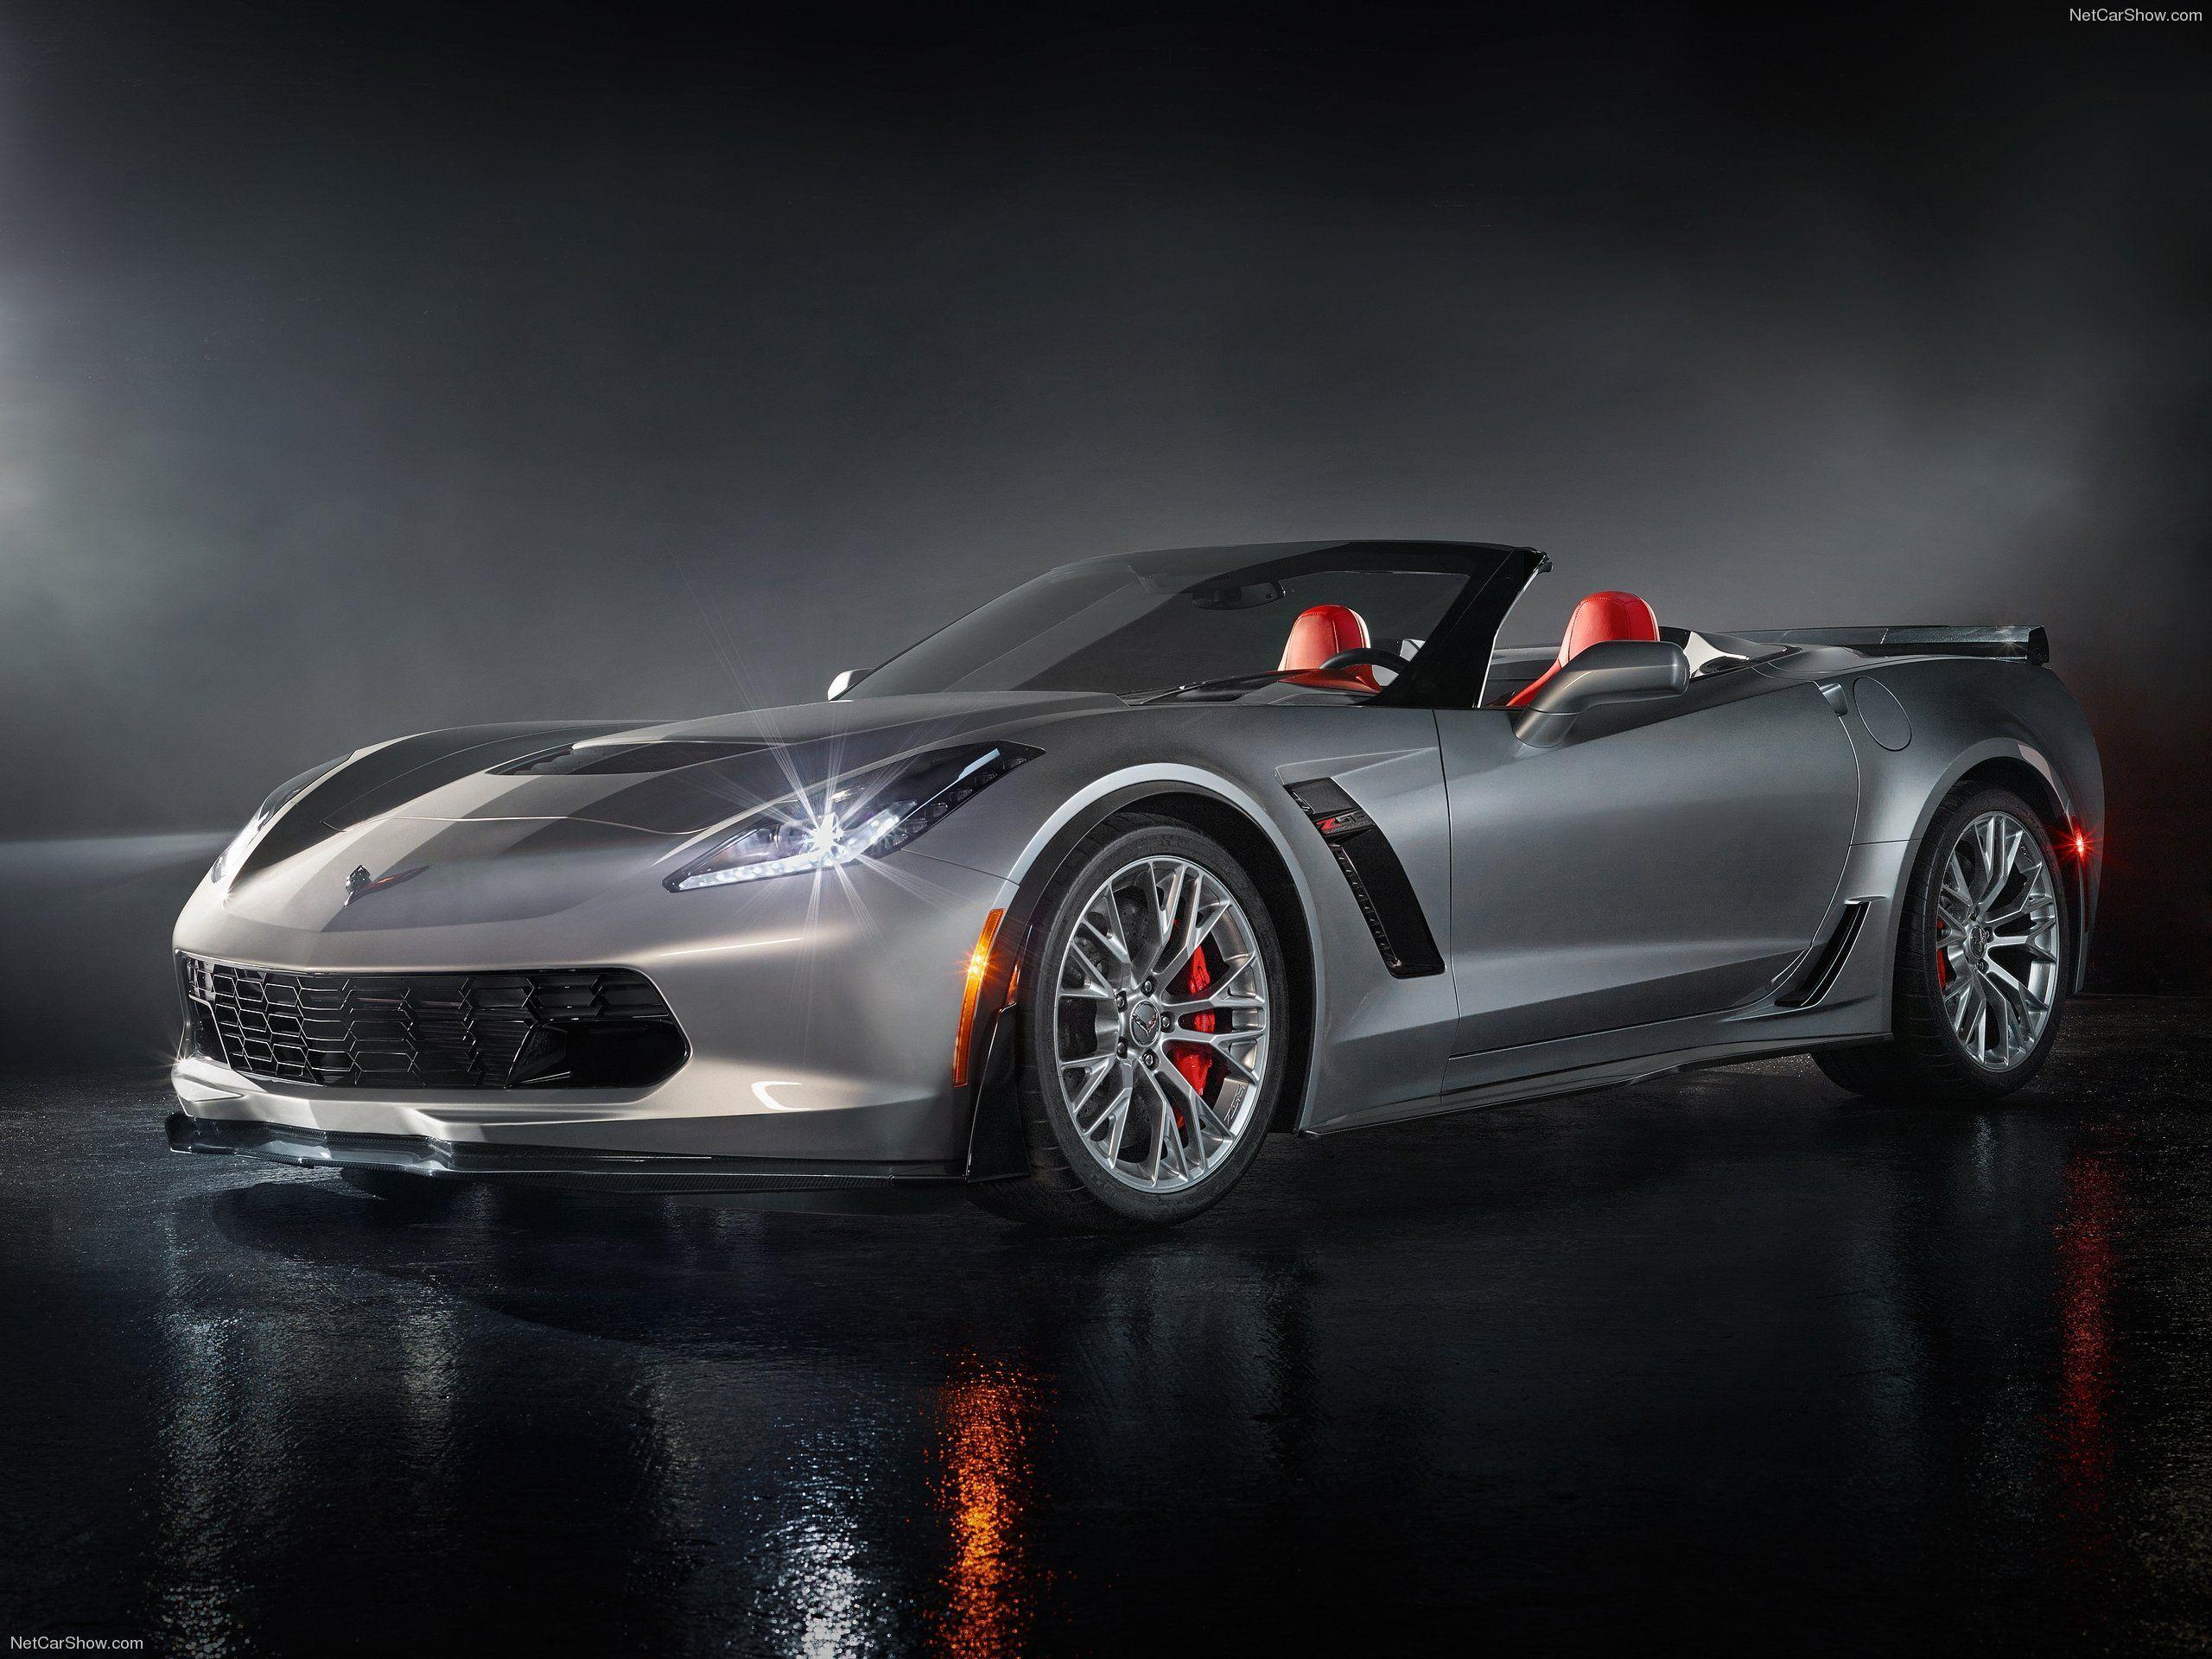 2015 z06 wallpaper - photo #16